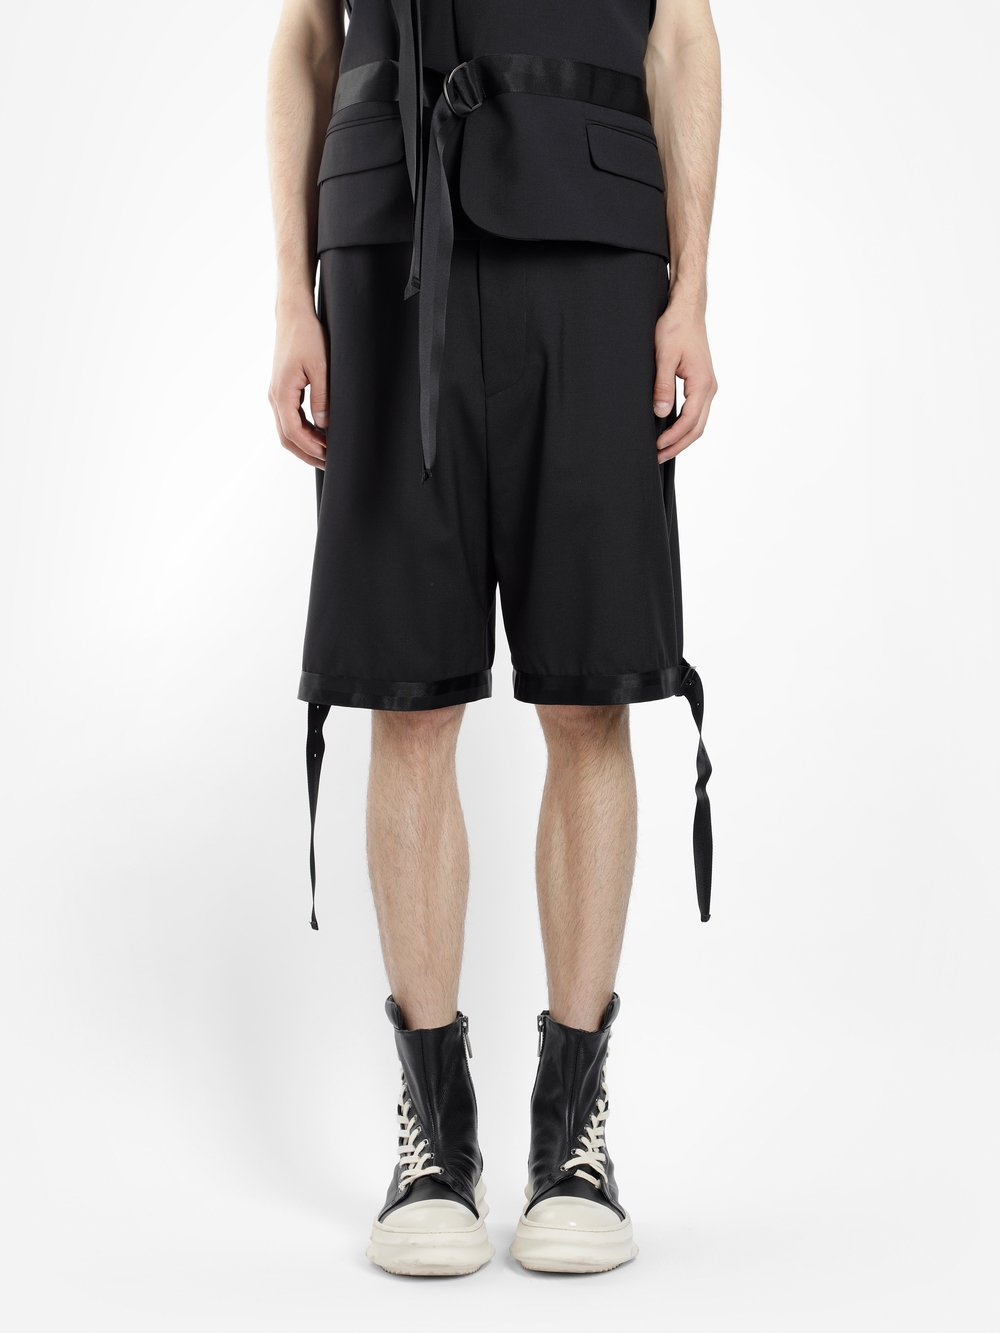 D.GNAK BY KANG.D MEN'S BLACK TAPED HEM SHORTS